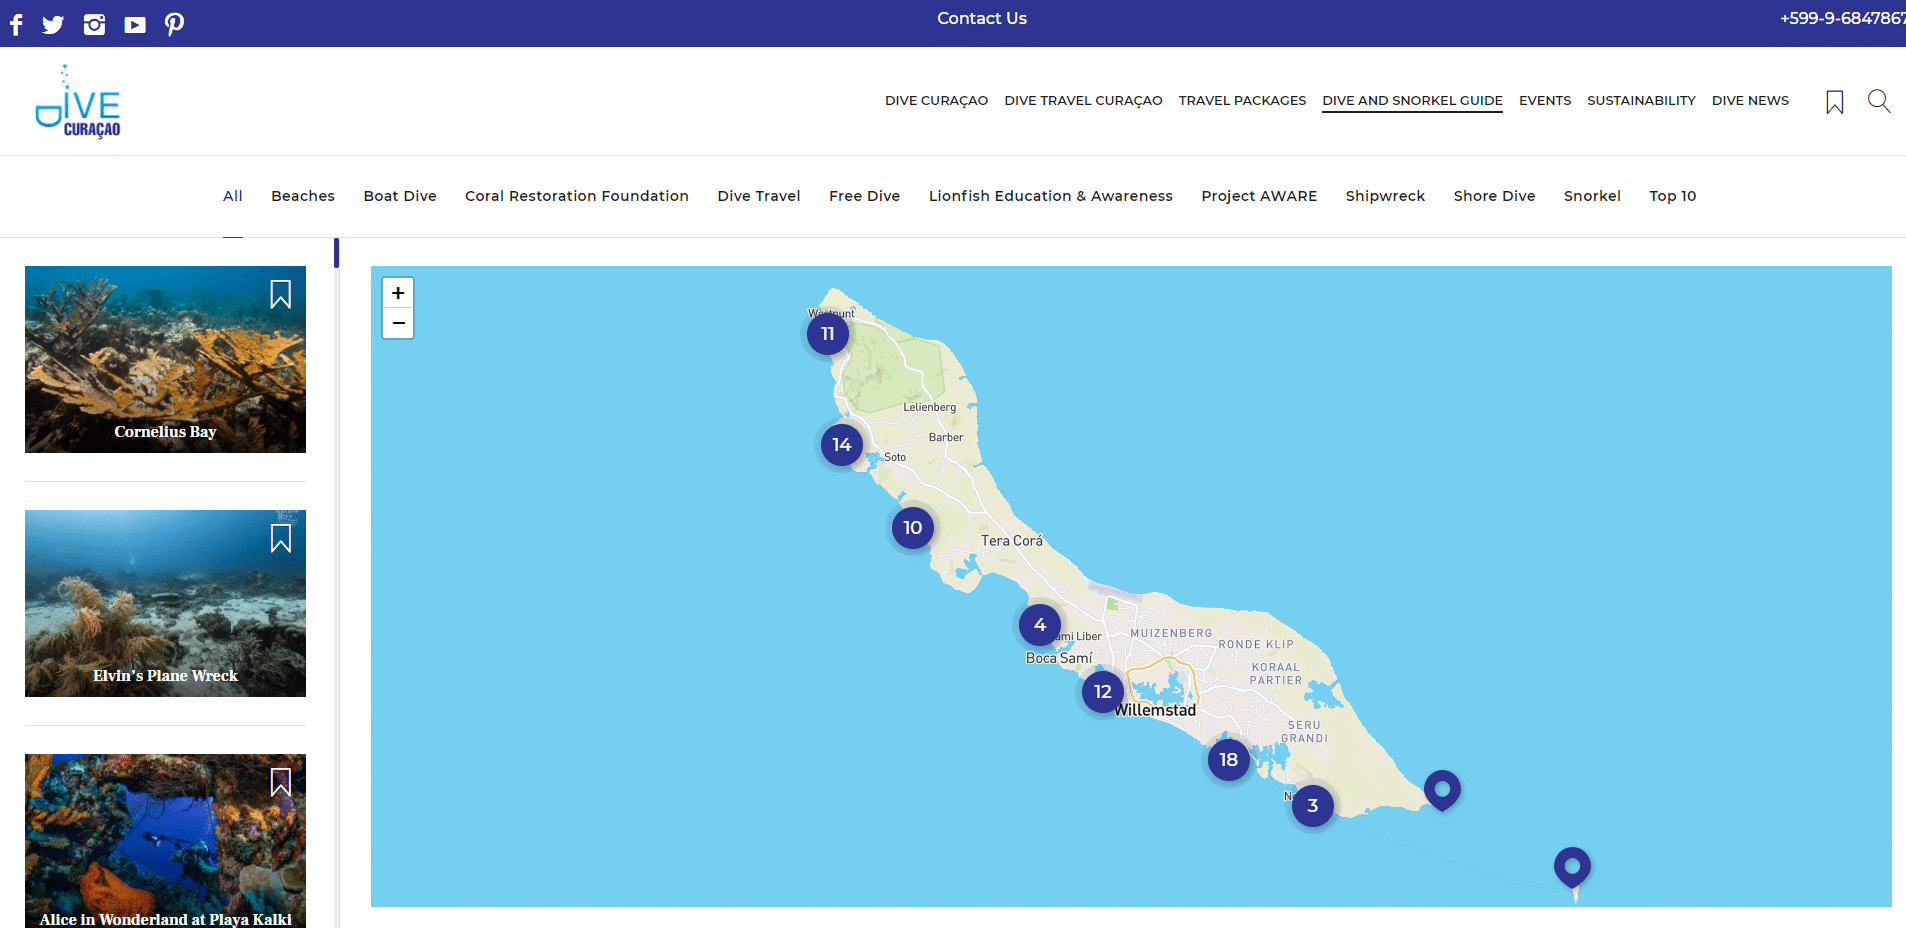 Curacao Dive Guide and Interactive Map | Dive Curaçao